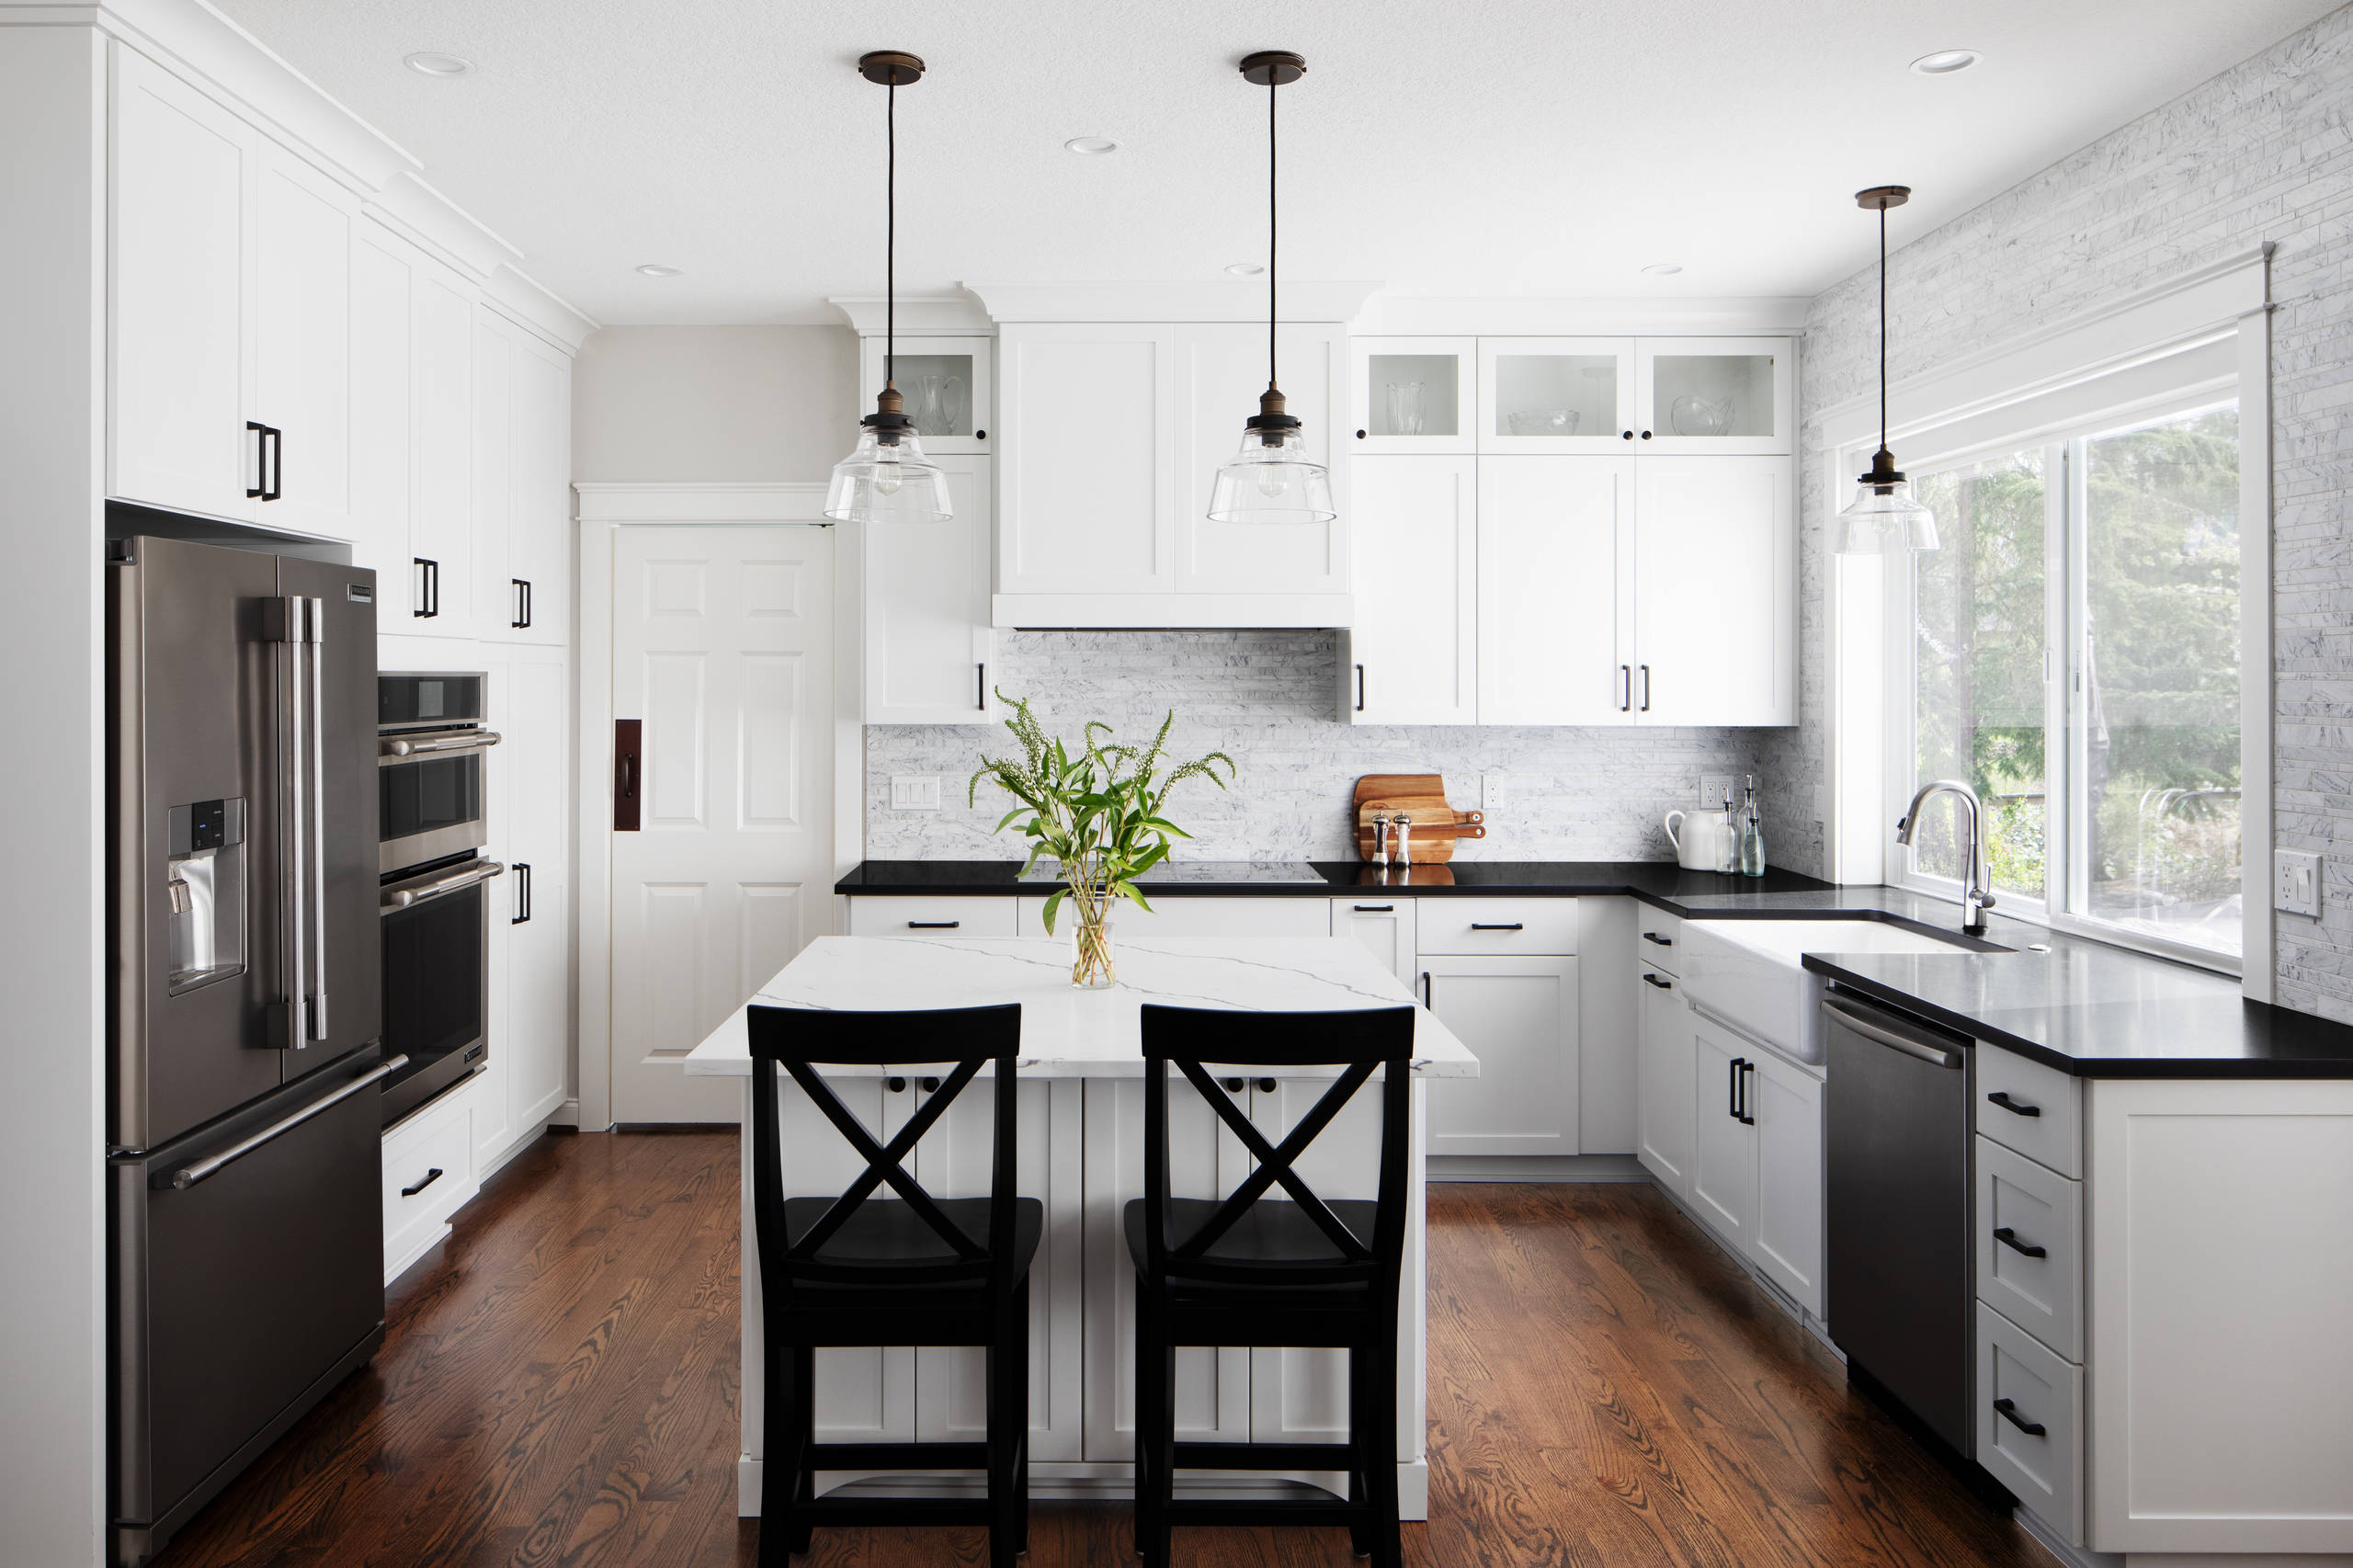 75 Beautiful White Kitchen With Black Countertops Pictures Ideas July 2021 Houzz